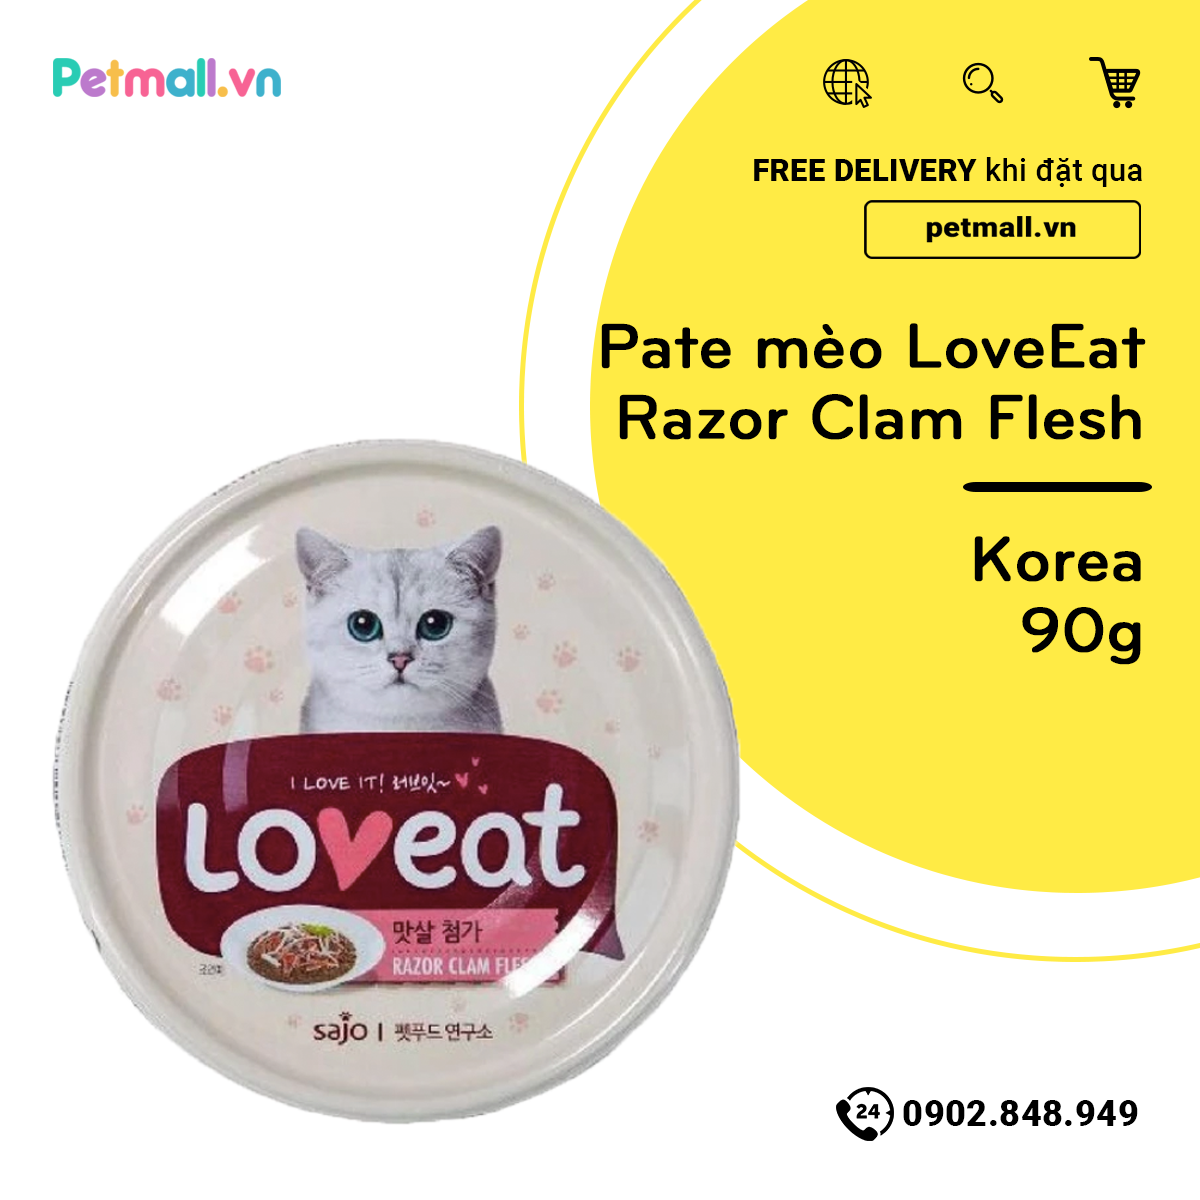 Pate mèo LoveEat Razor Clam Flesh 90g - Korea